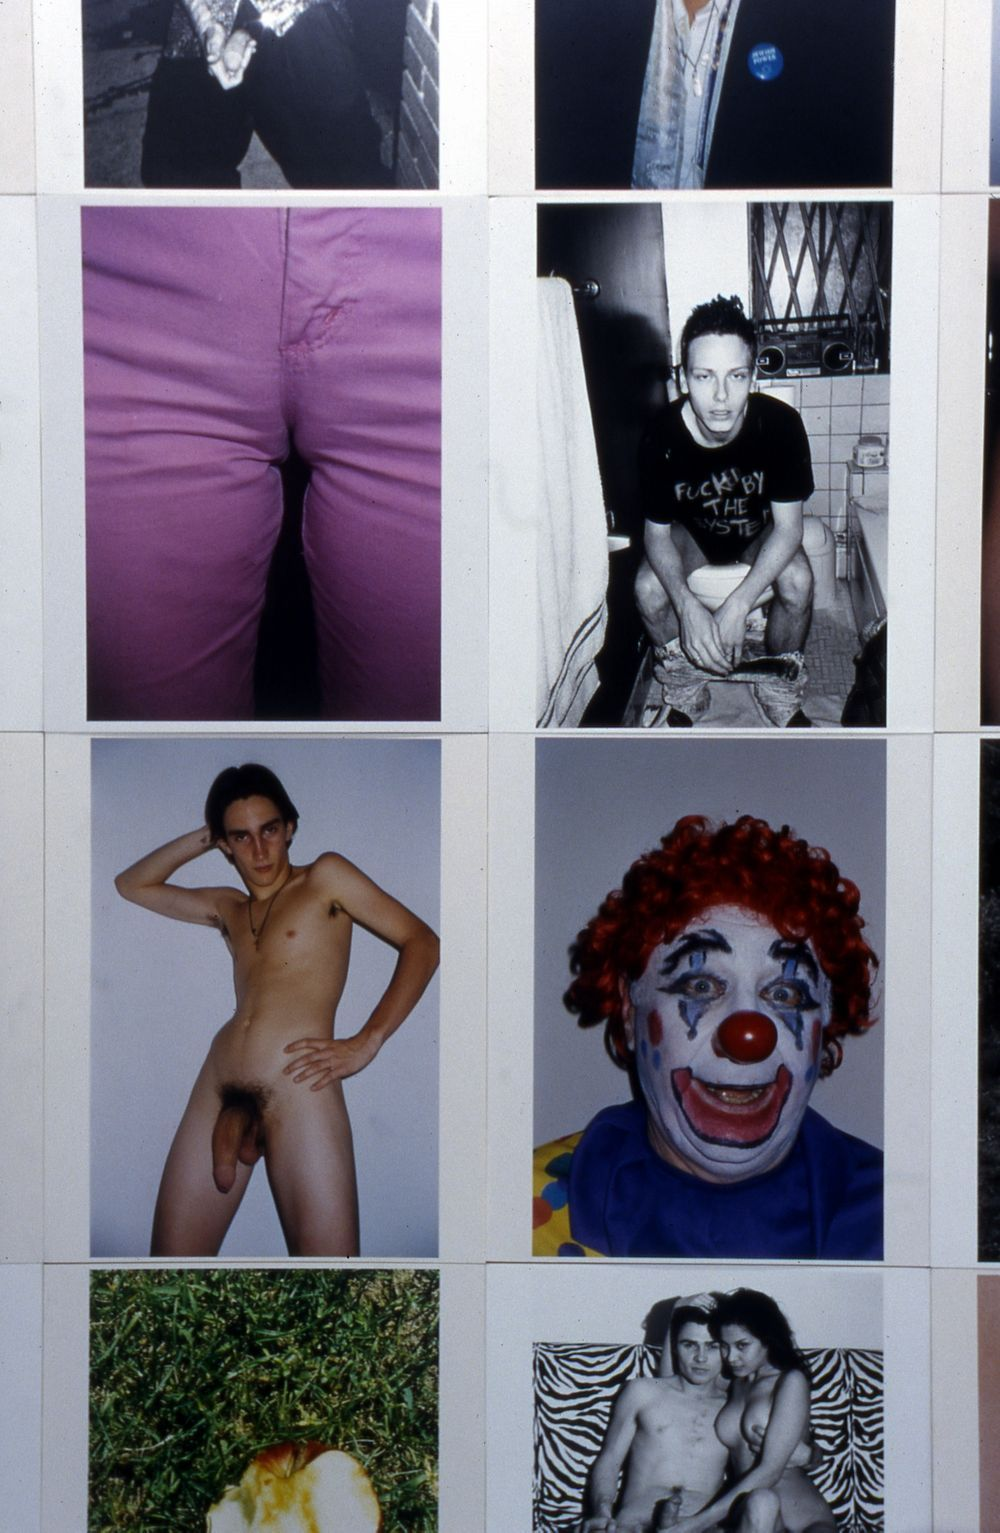 Artist:Terry RICHARDSON, Exhibition:Je t'aime